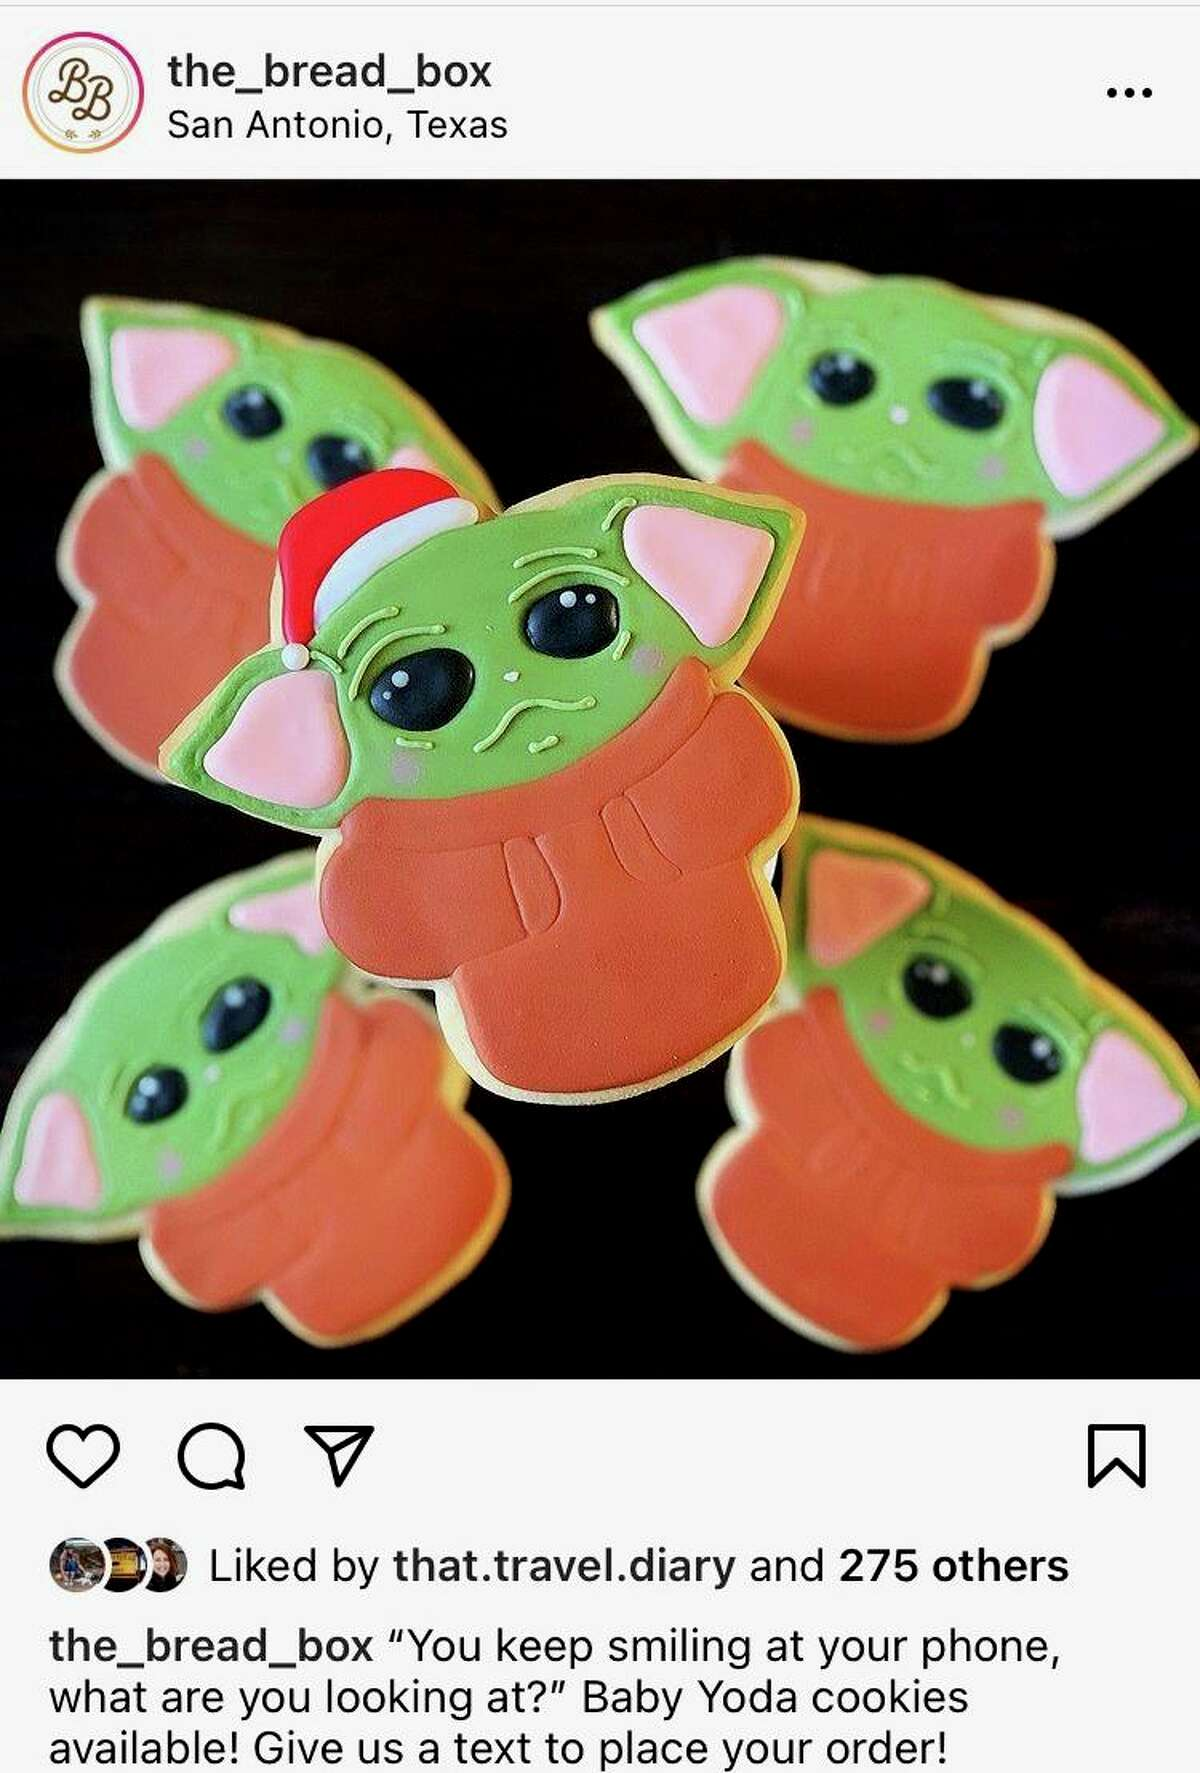 These Baby Yoda cookies turned into a viral Instagram post for The Bread Box and led to the sale of more than 10,000 cookies nationwide.